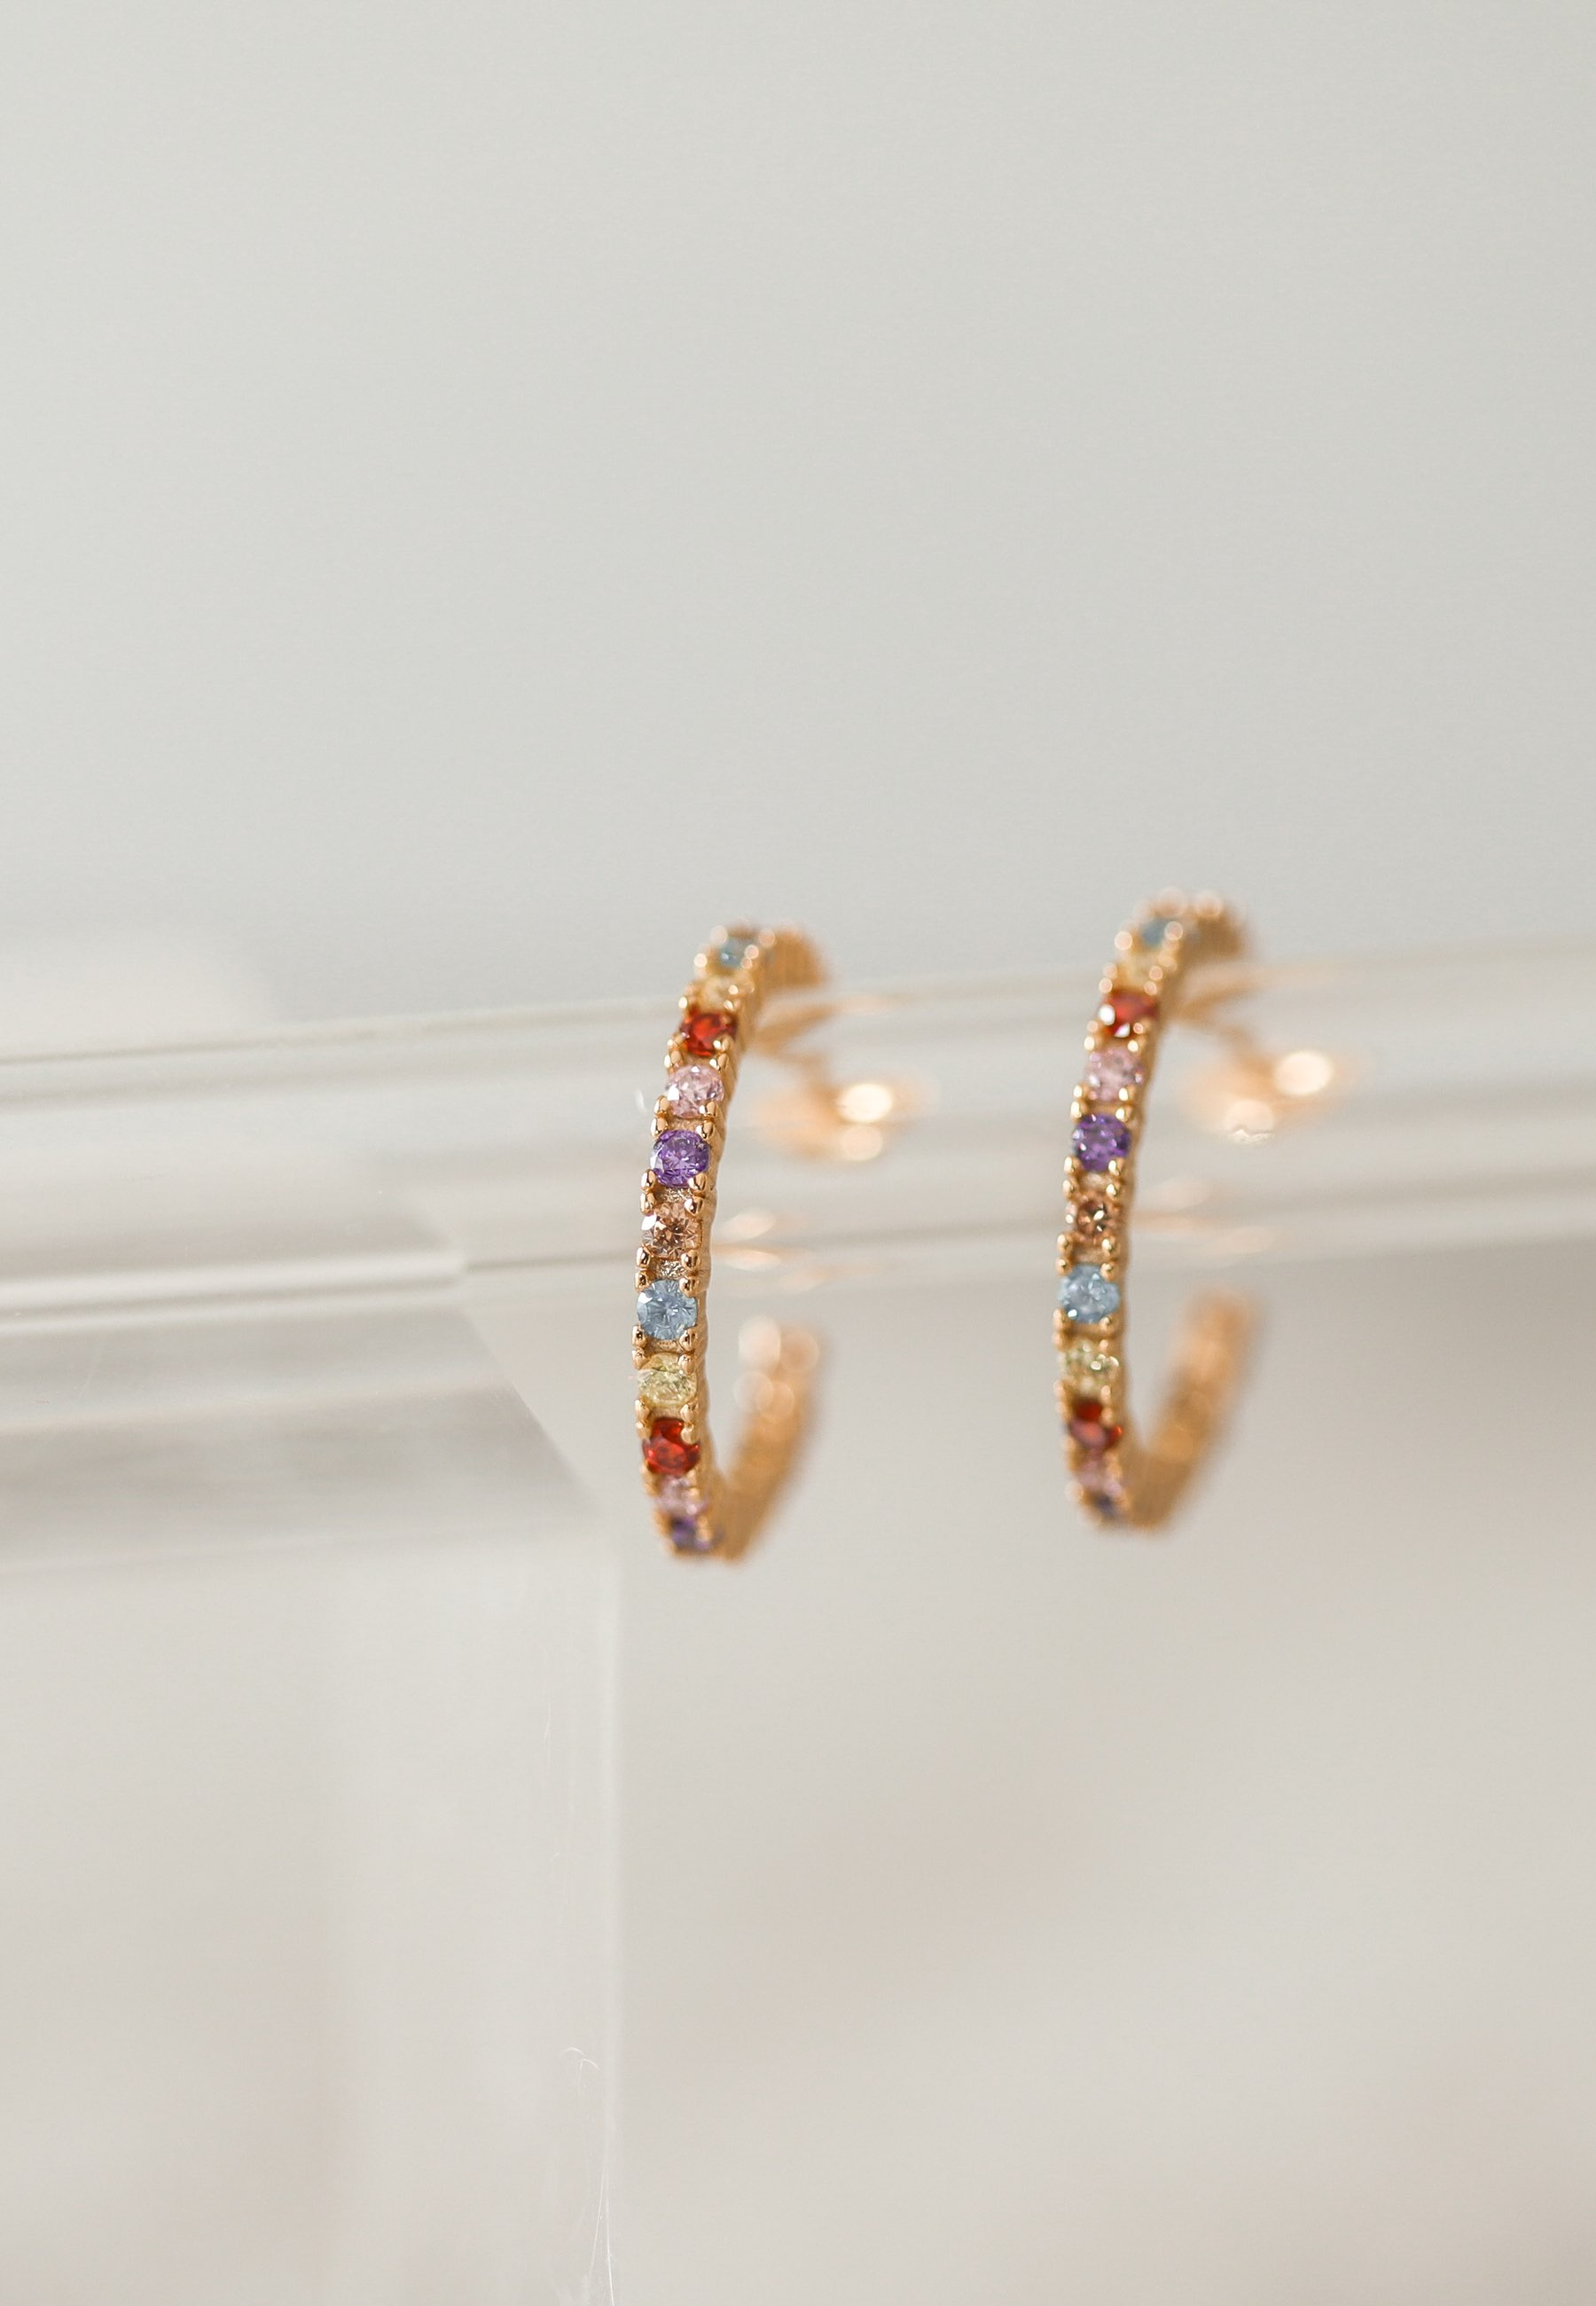 FESTIVAL gold hoop earrings